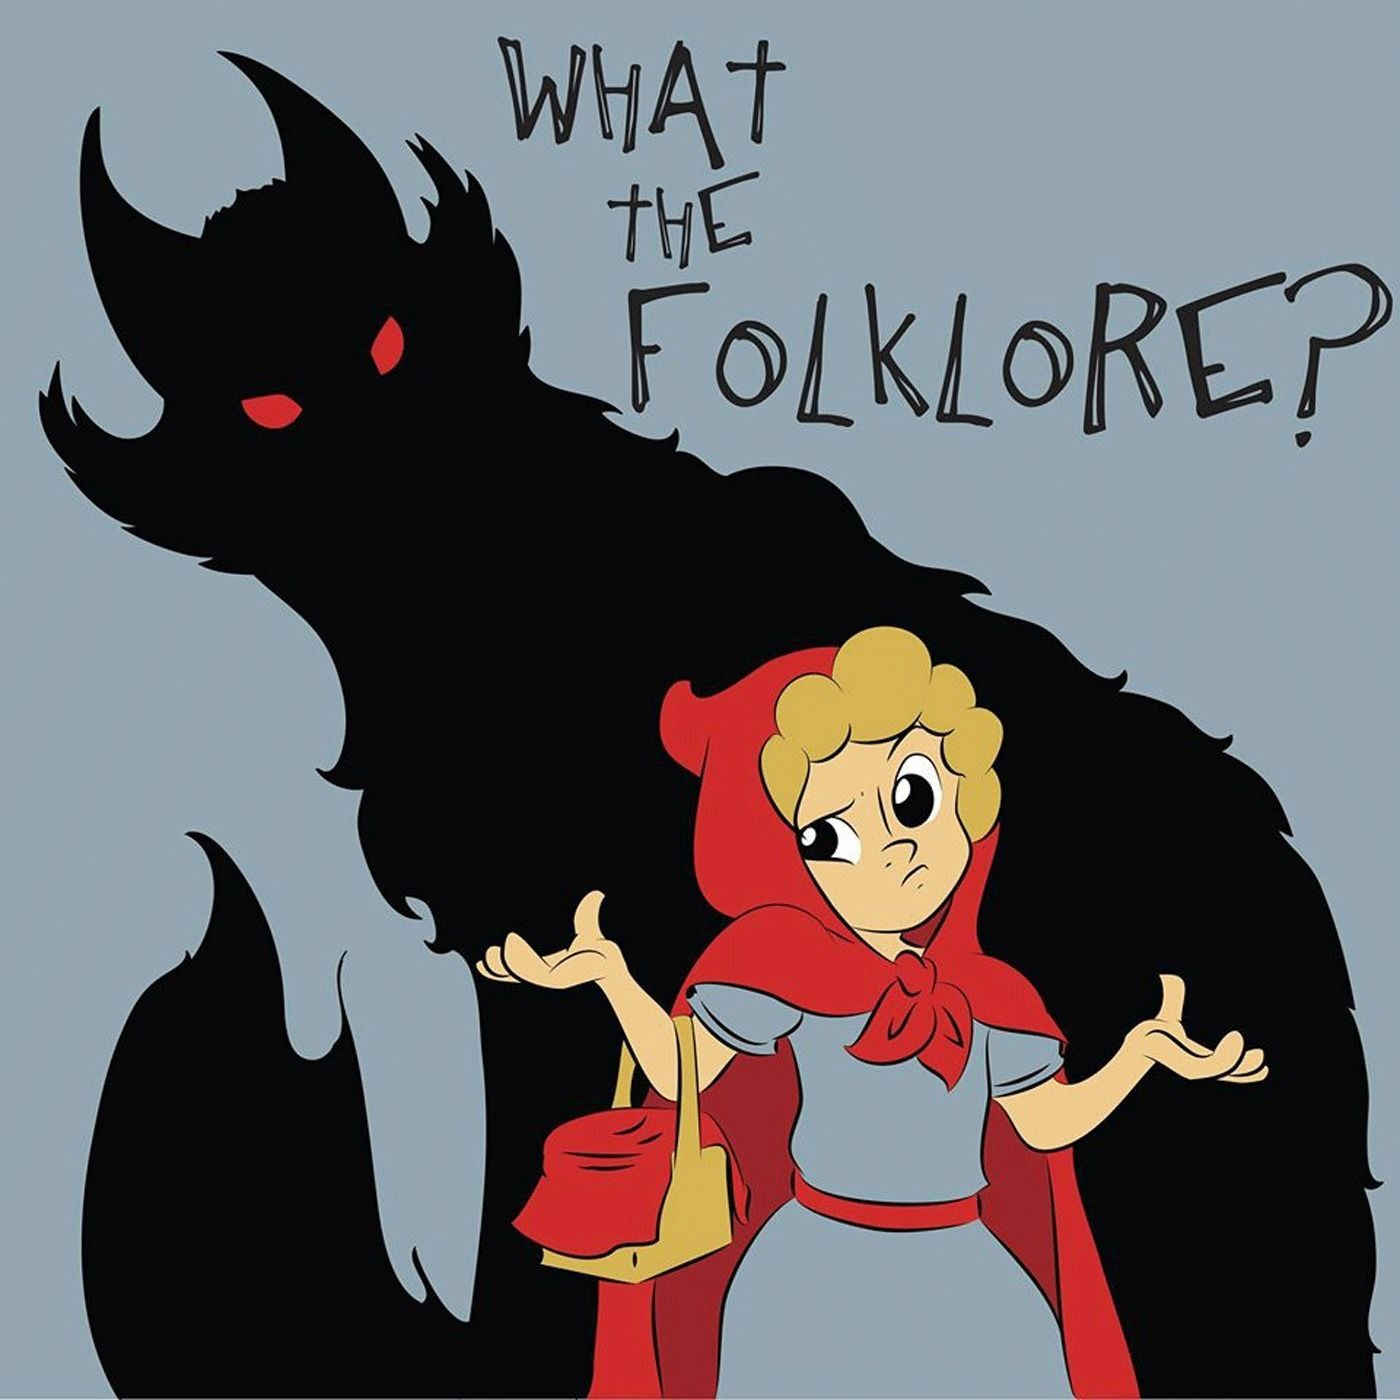 What The Folklore?